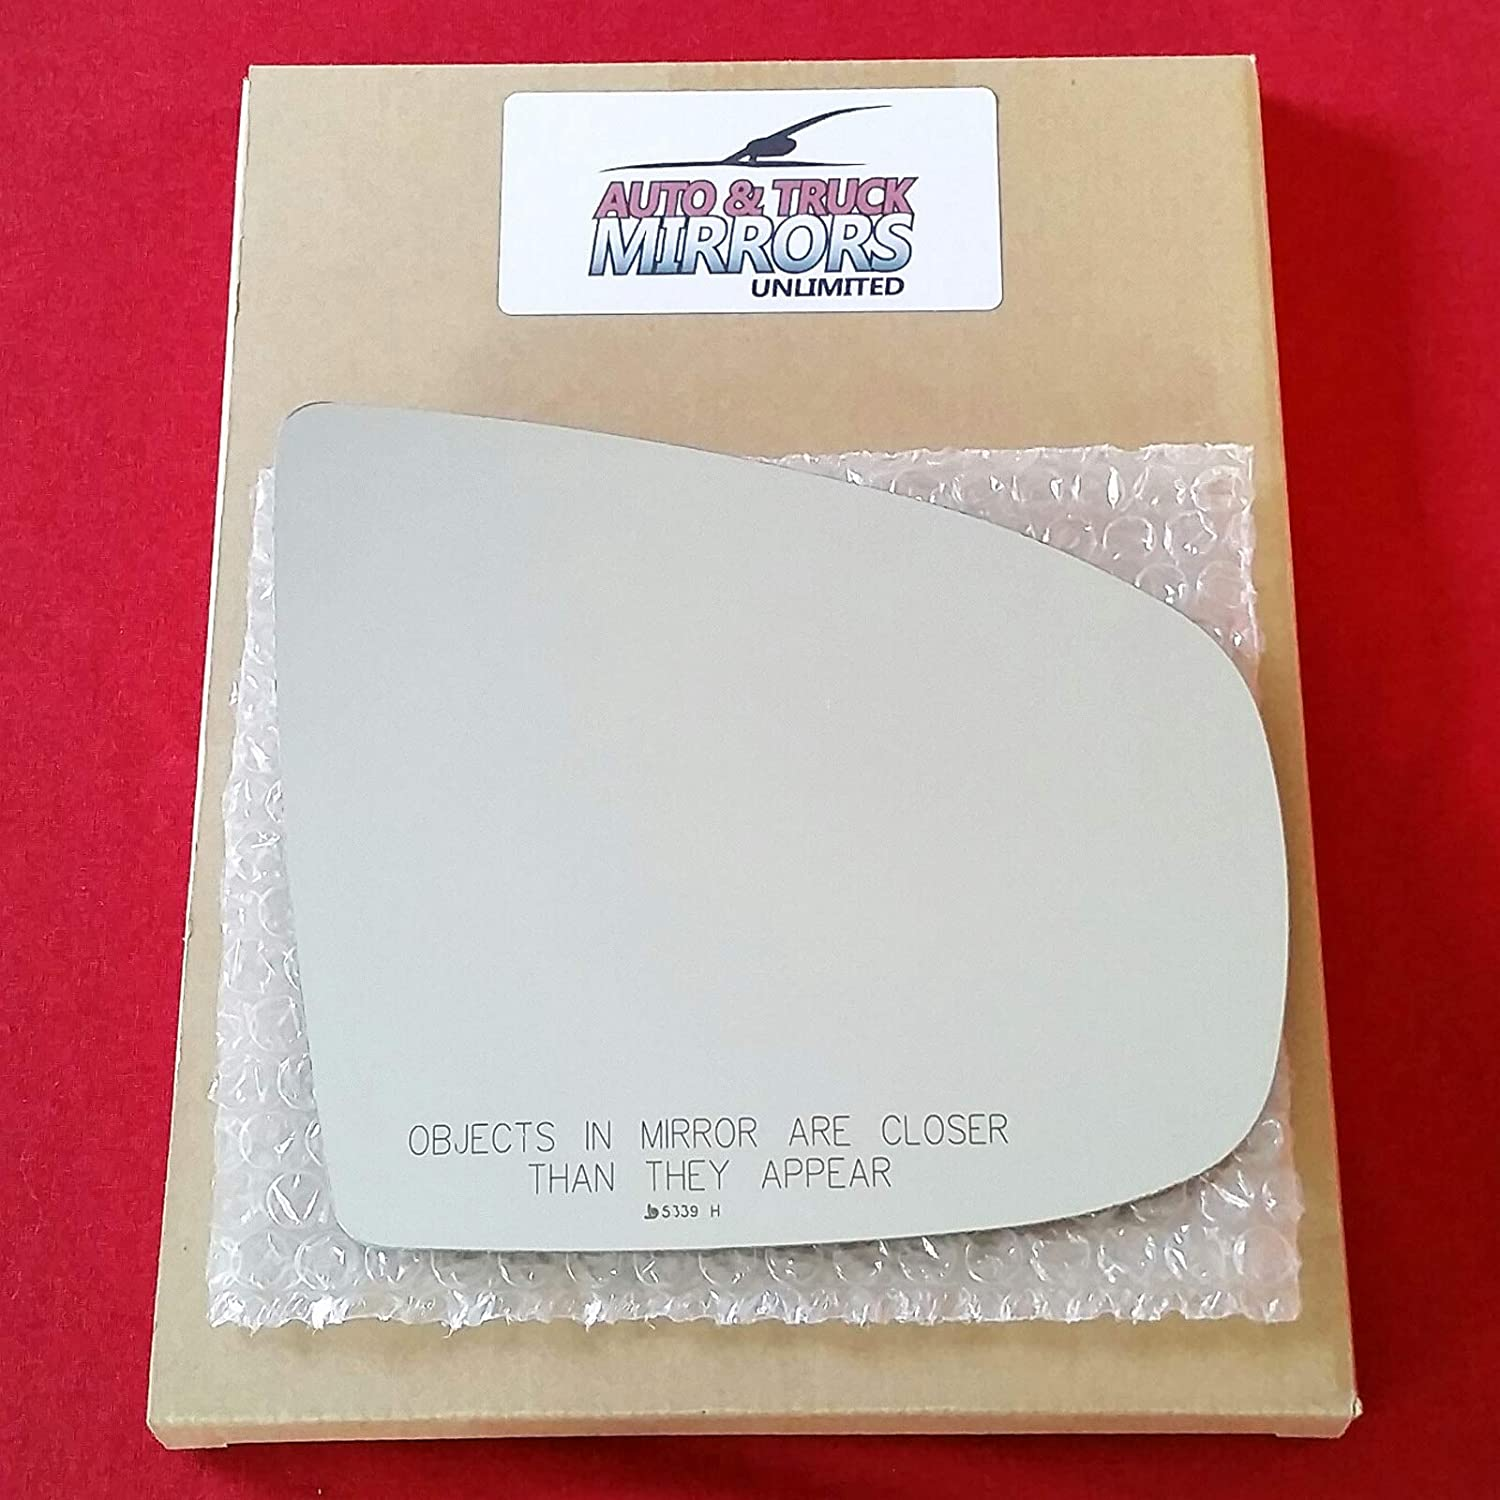 2008-2014 BMW X6 Burco 5339H Convex Passenger Side Power Replacement Mirror Glass Heated for 2008-2014 BMW X5